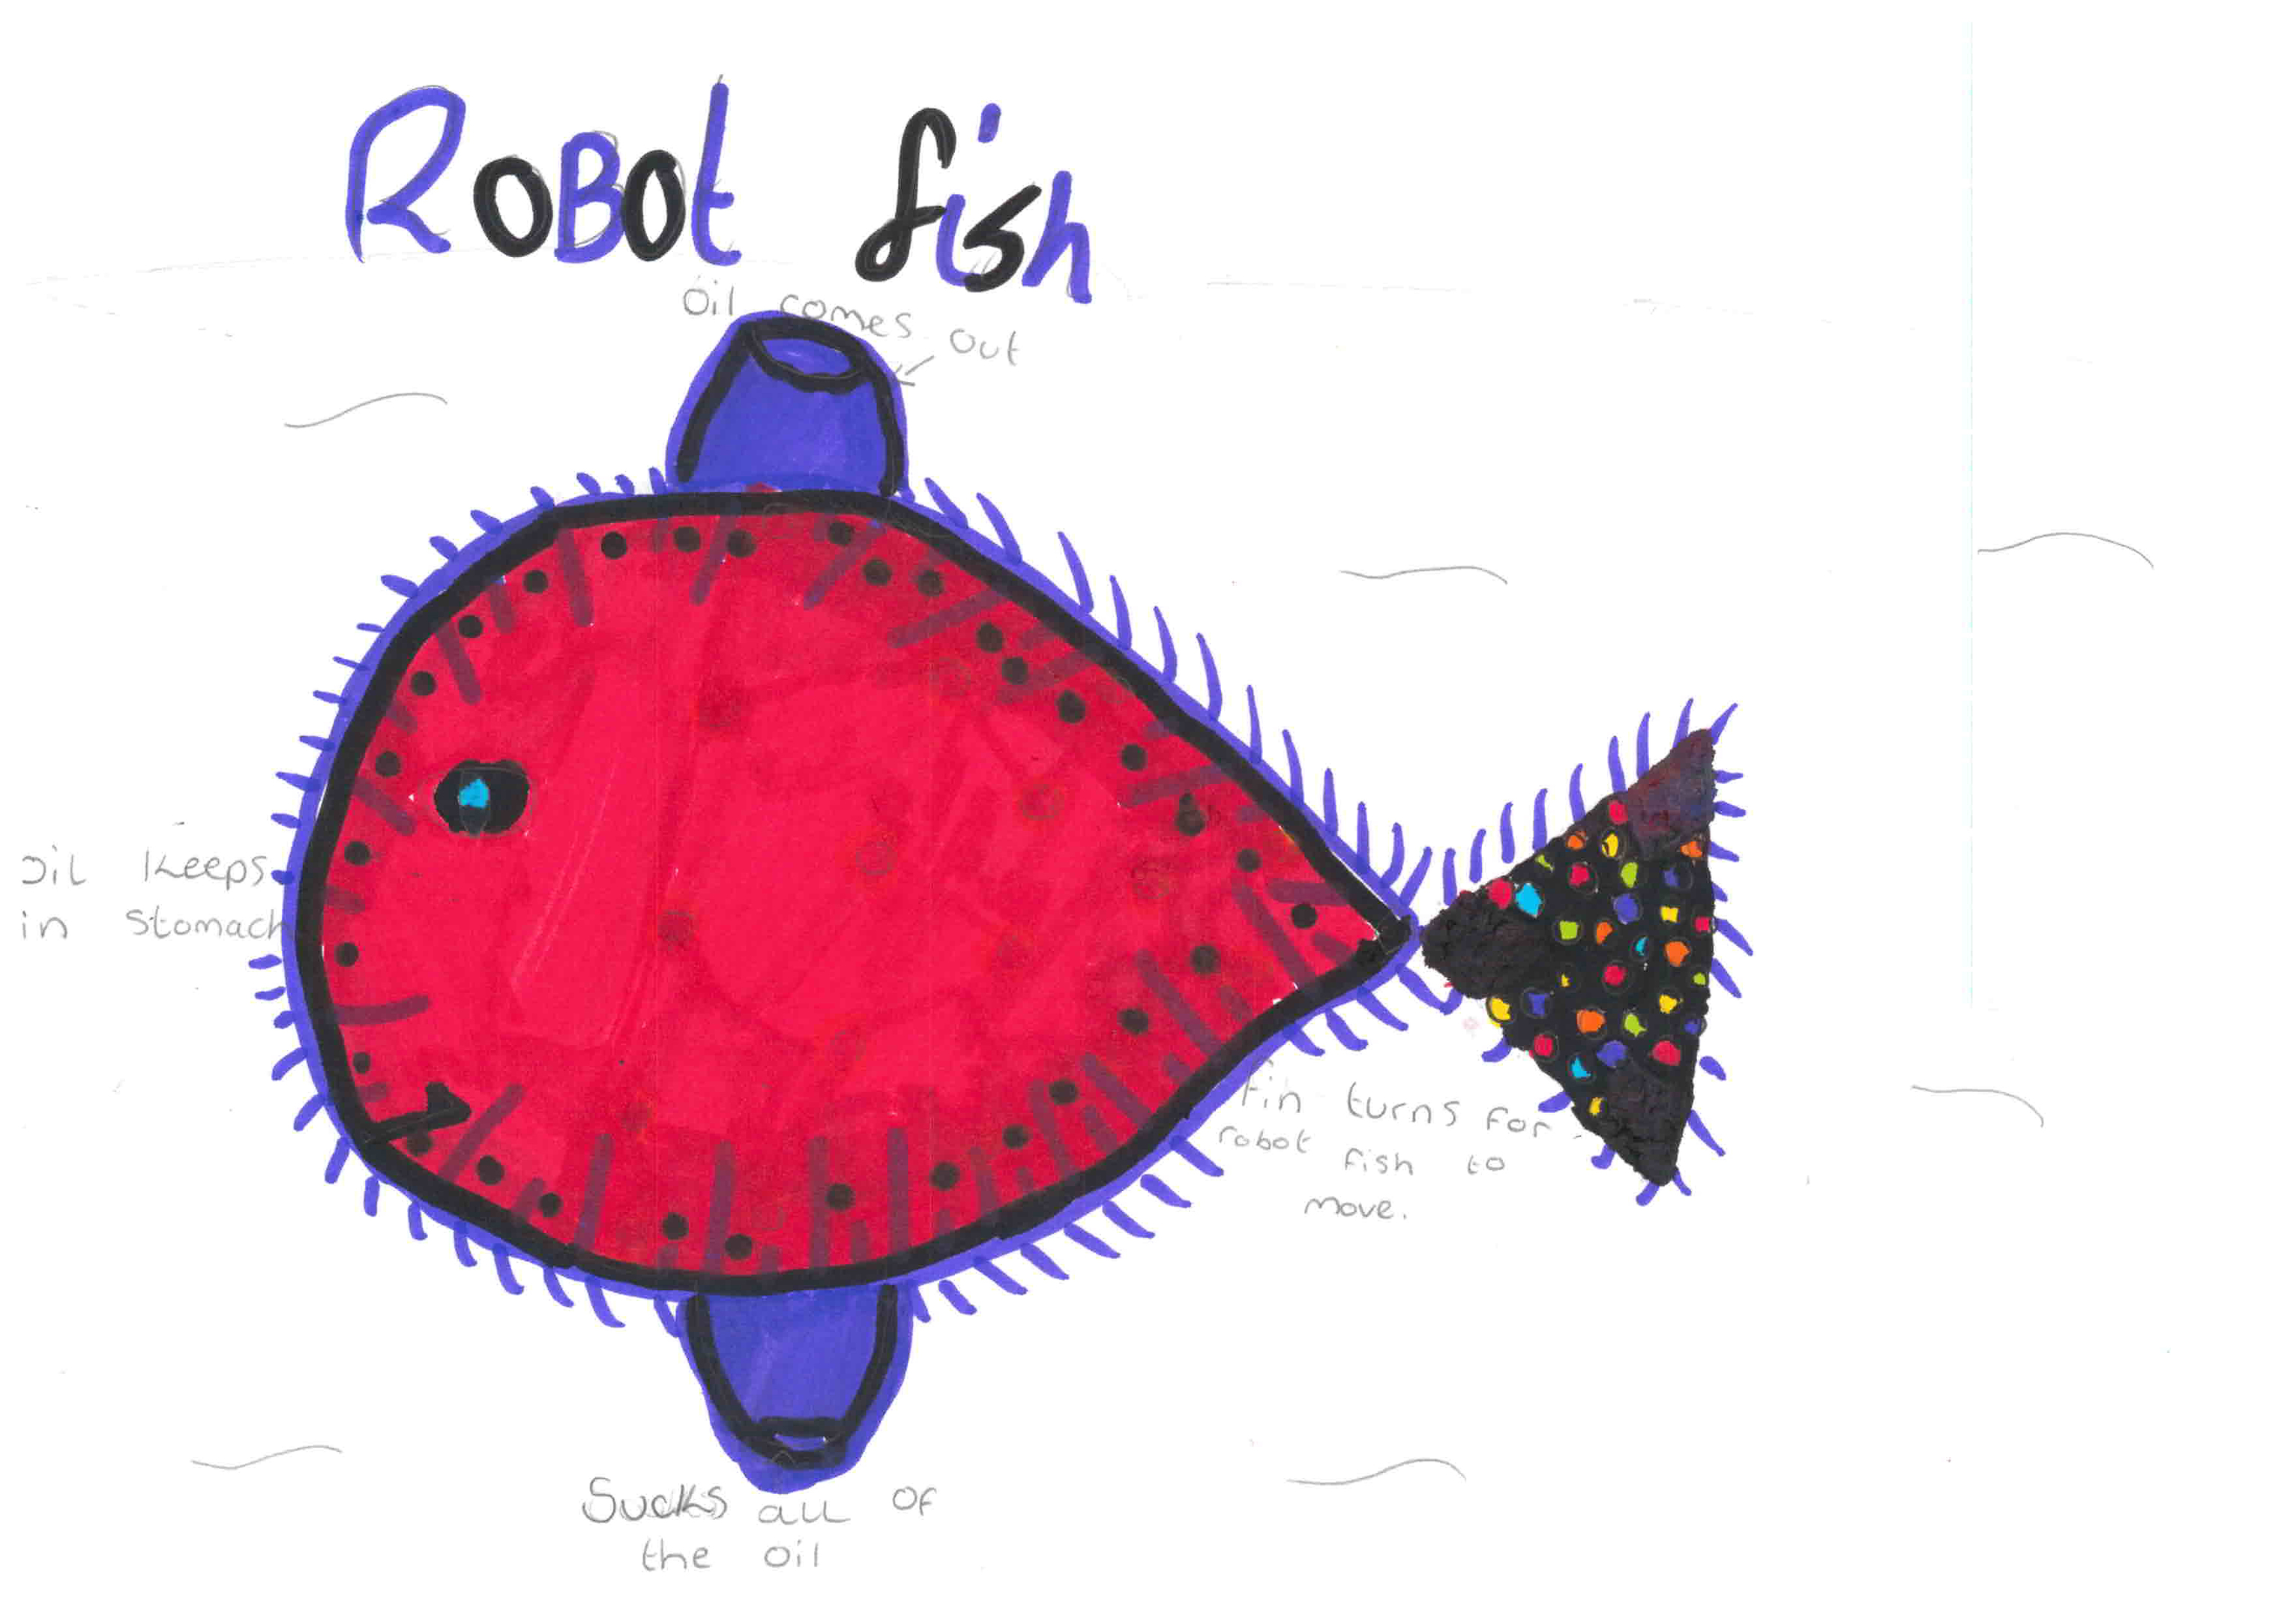 A robotic fish was one idea put forward by Leah Flanagan from Scotstown.